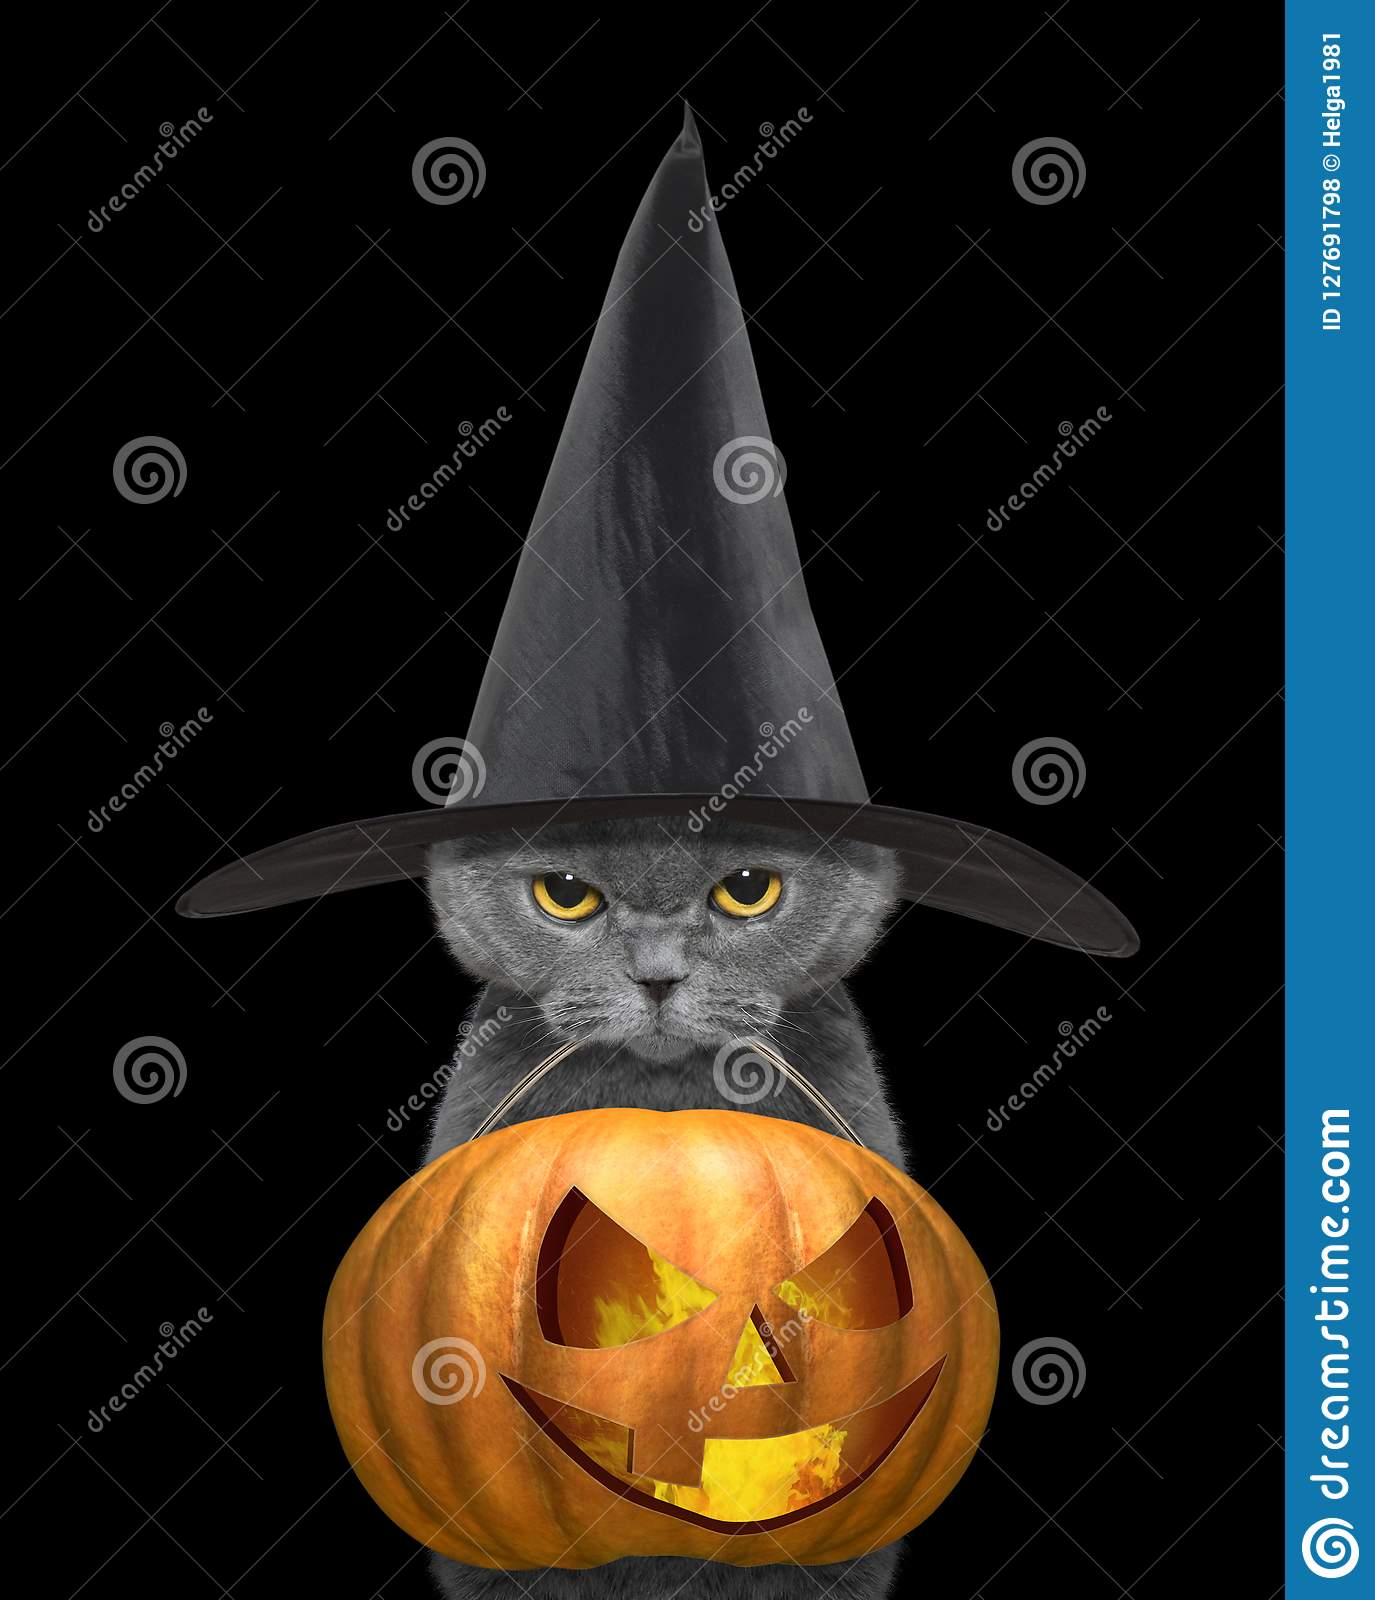 c625b278 Cute Cat In Black Hat Hold Halloween Pumpkin In The Mouth - On Black ...